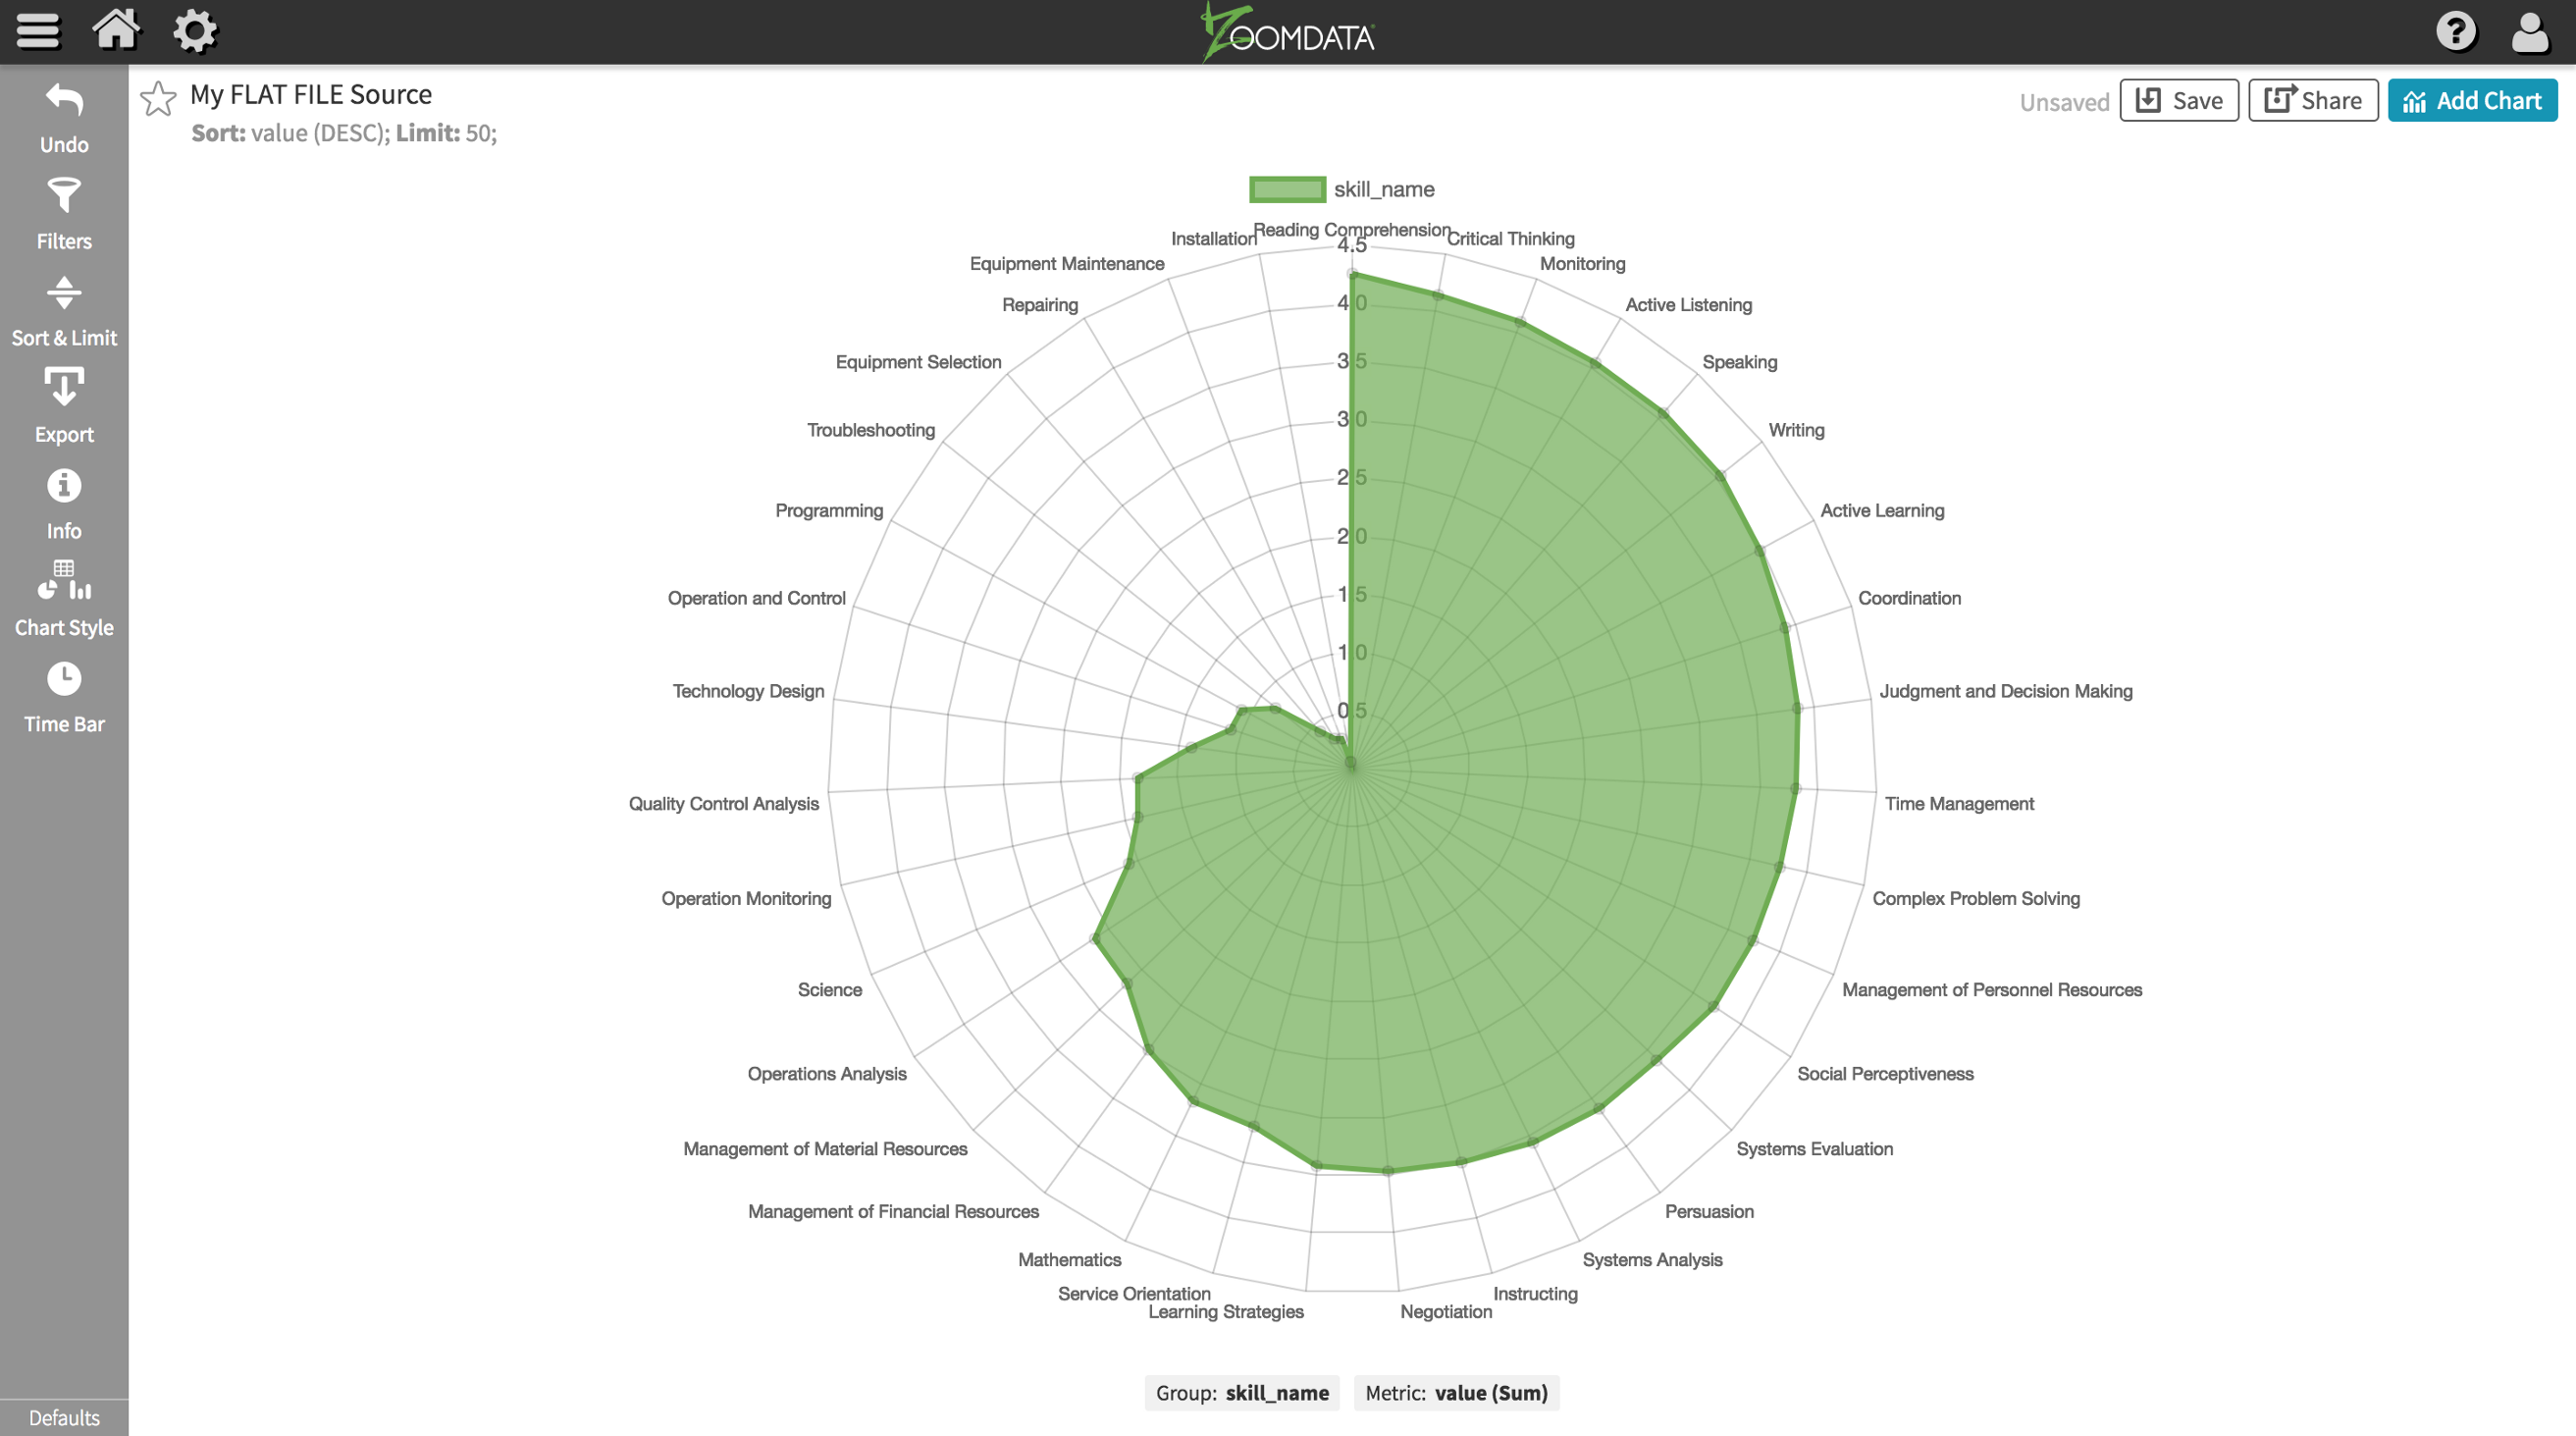 Simple visualization template with Zoomdata Chart CLI tool and Chart js